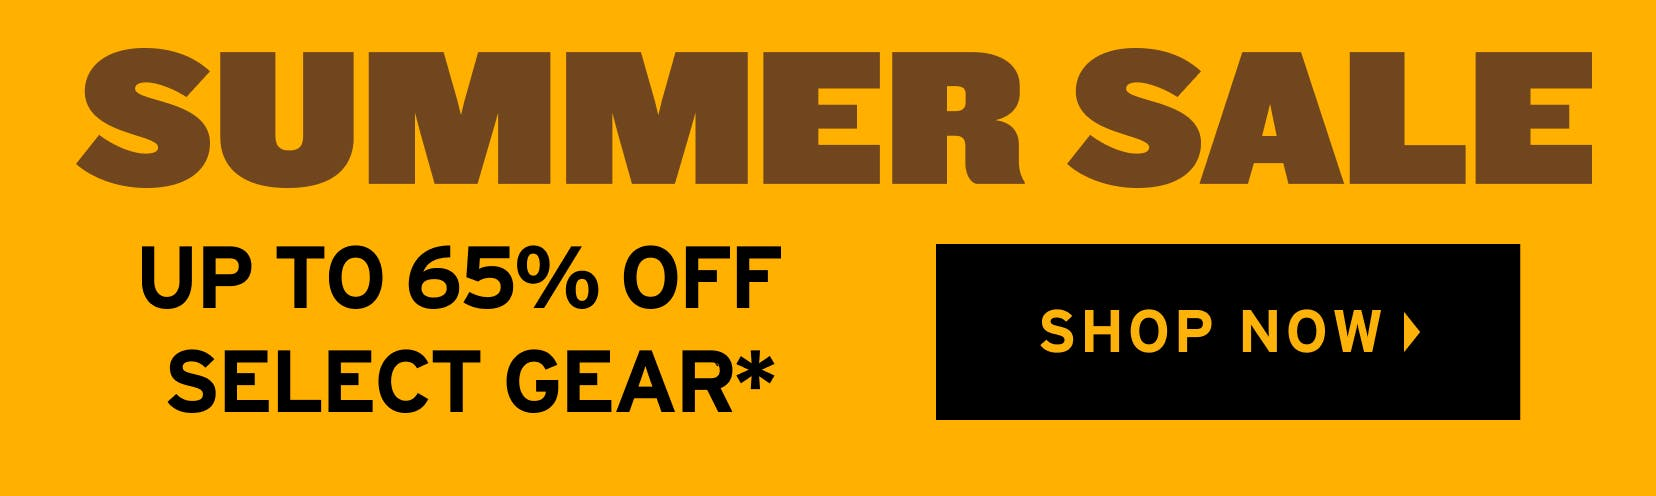 Summer Sale: At Least 65% Off Select Gear. Shop Now.